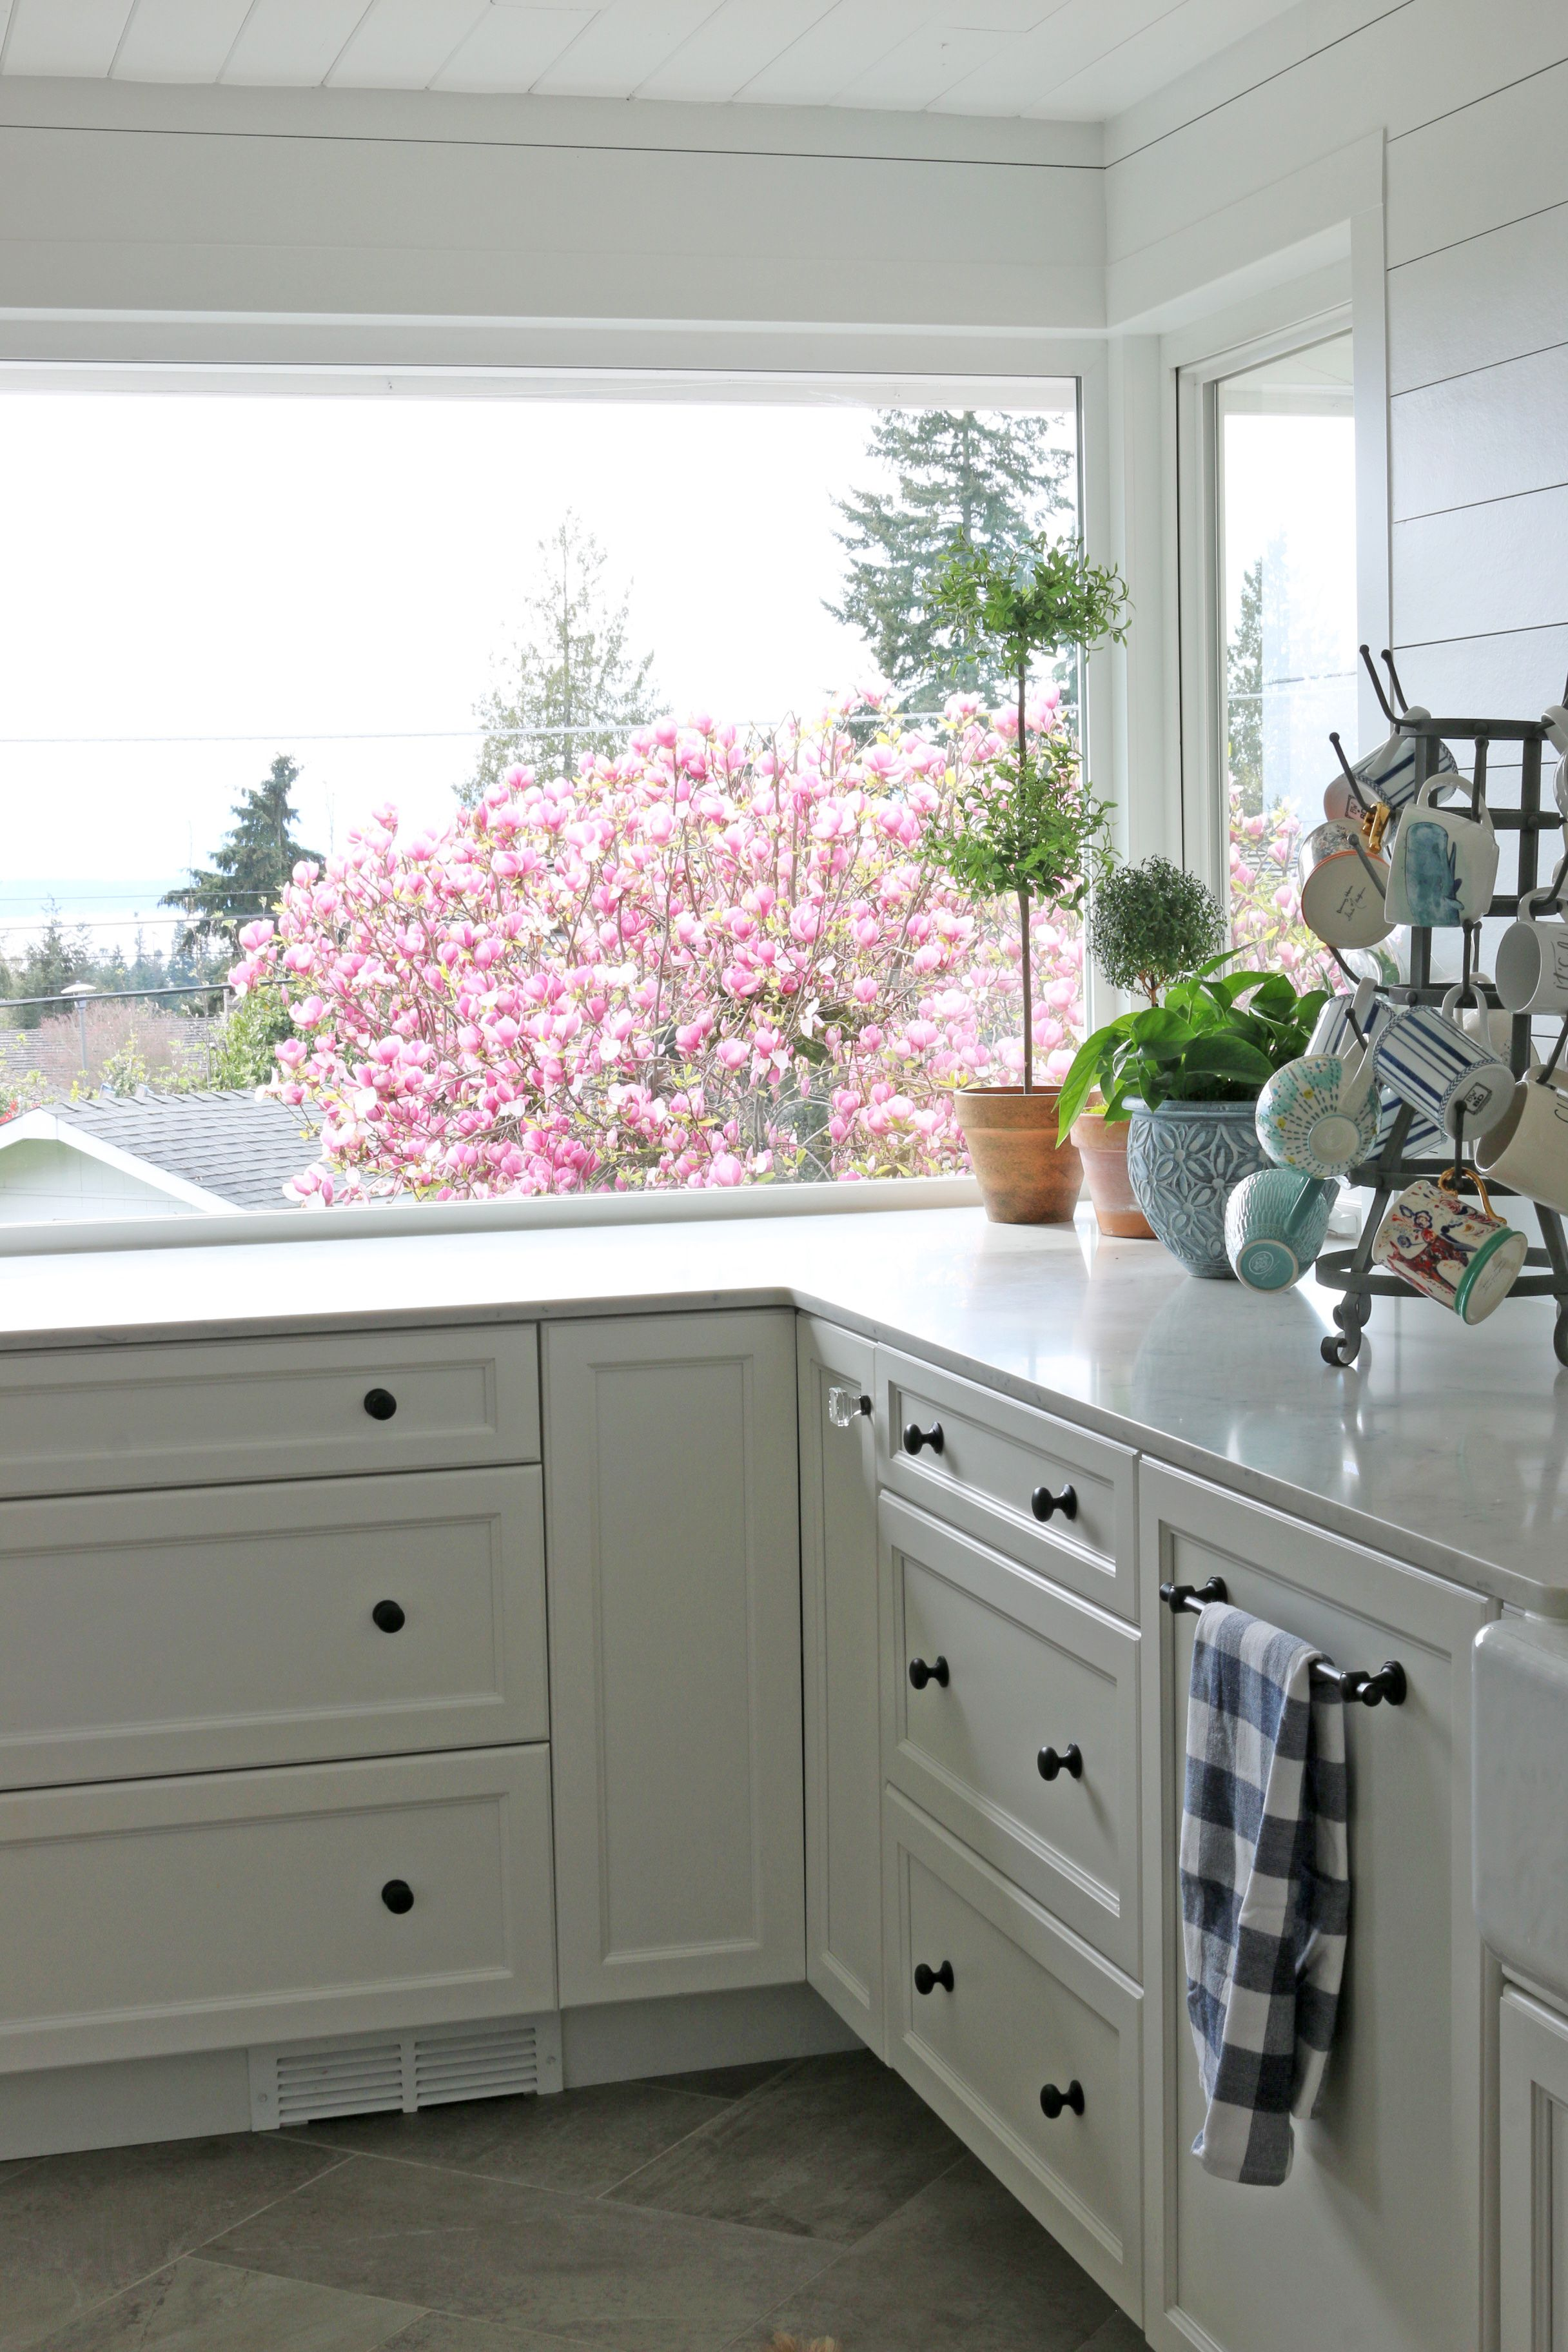 surface shocking top carrera marble cabinets quartz carrara cost countertop look kitchen finish like white full new size most countertops expensive slab of solid black that honed